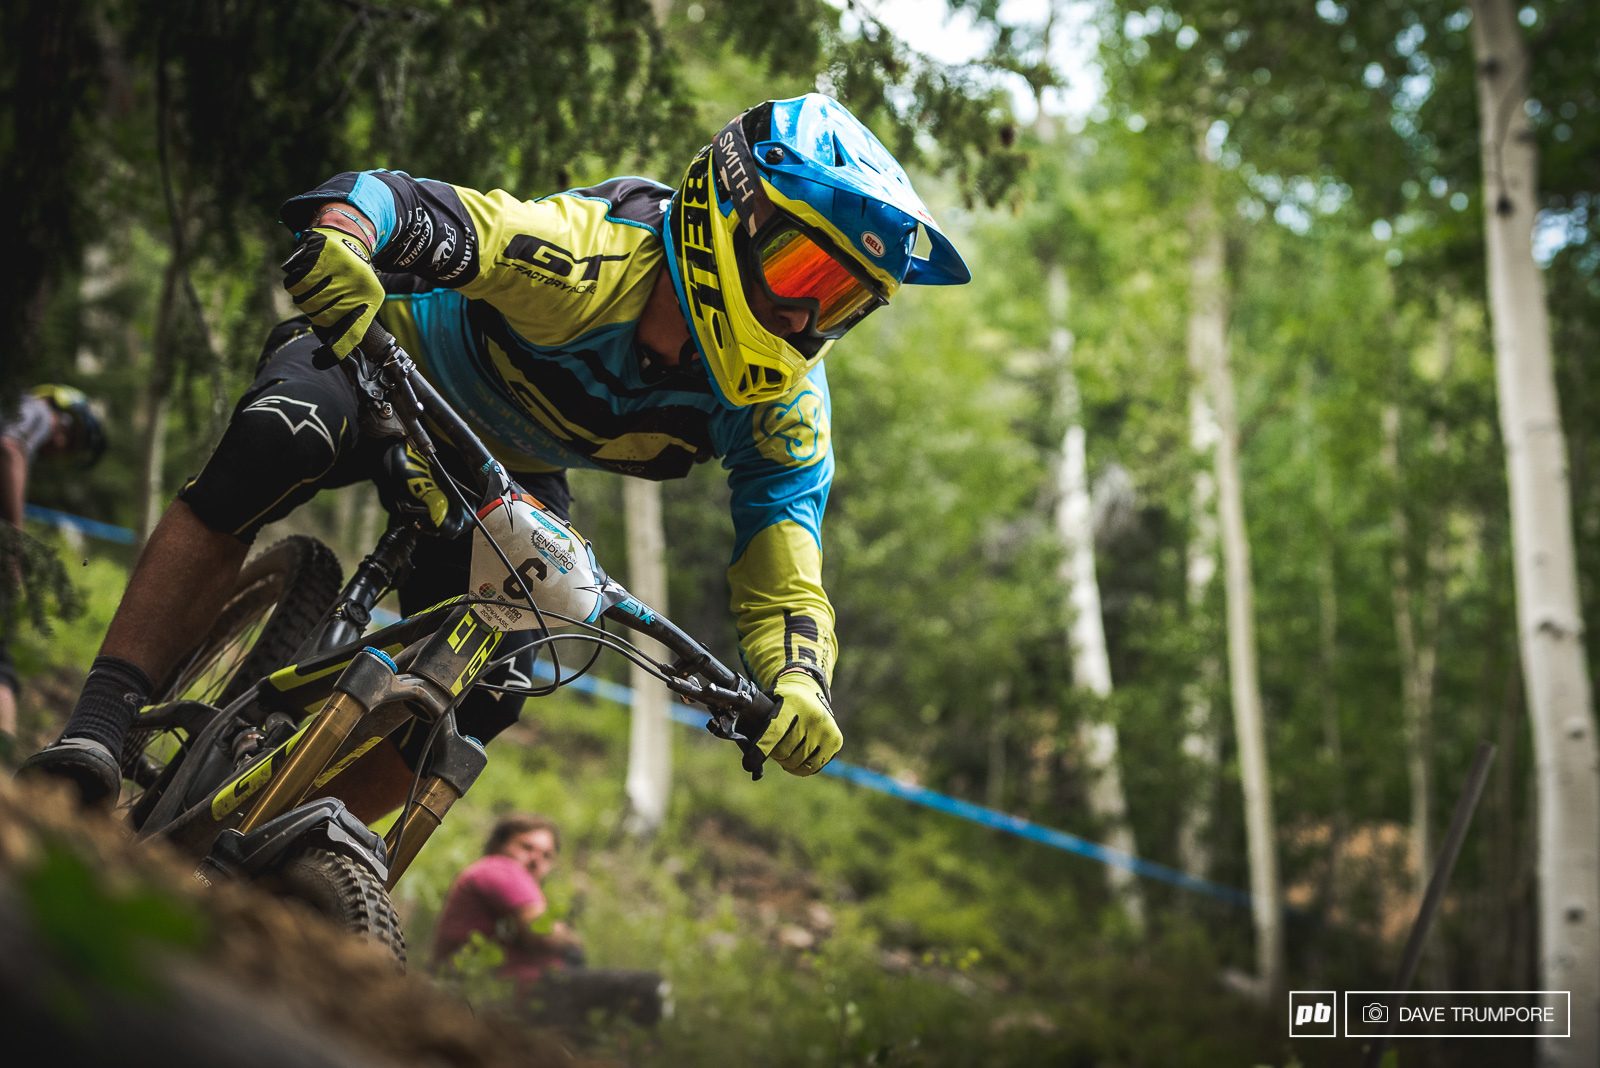 After a broken wrist suffered while racing the WC at Fort William Martin Maes has finally been cleared to race here in Aspen. Admittedly a bit down on upper body strength his fitness should still shine through on the physical Aspen stages.